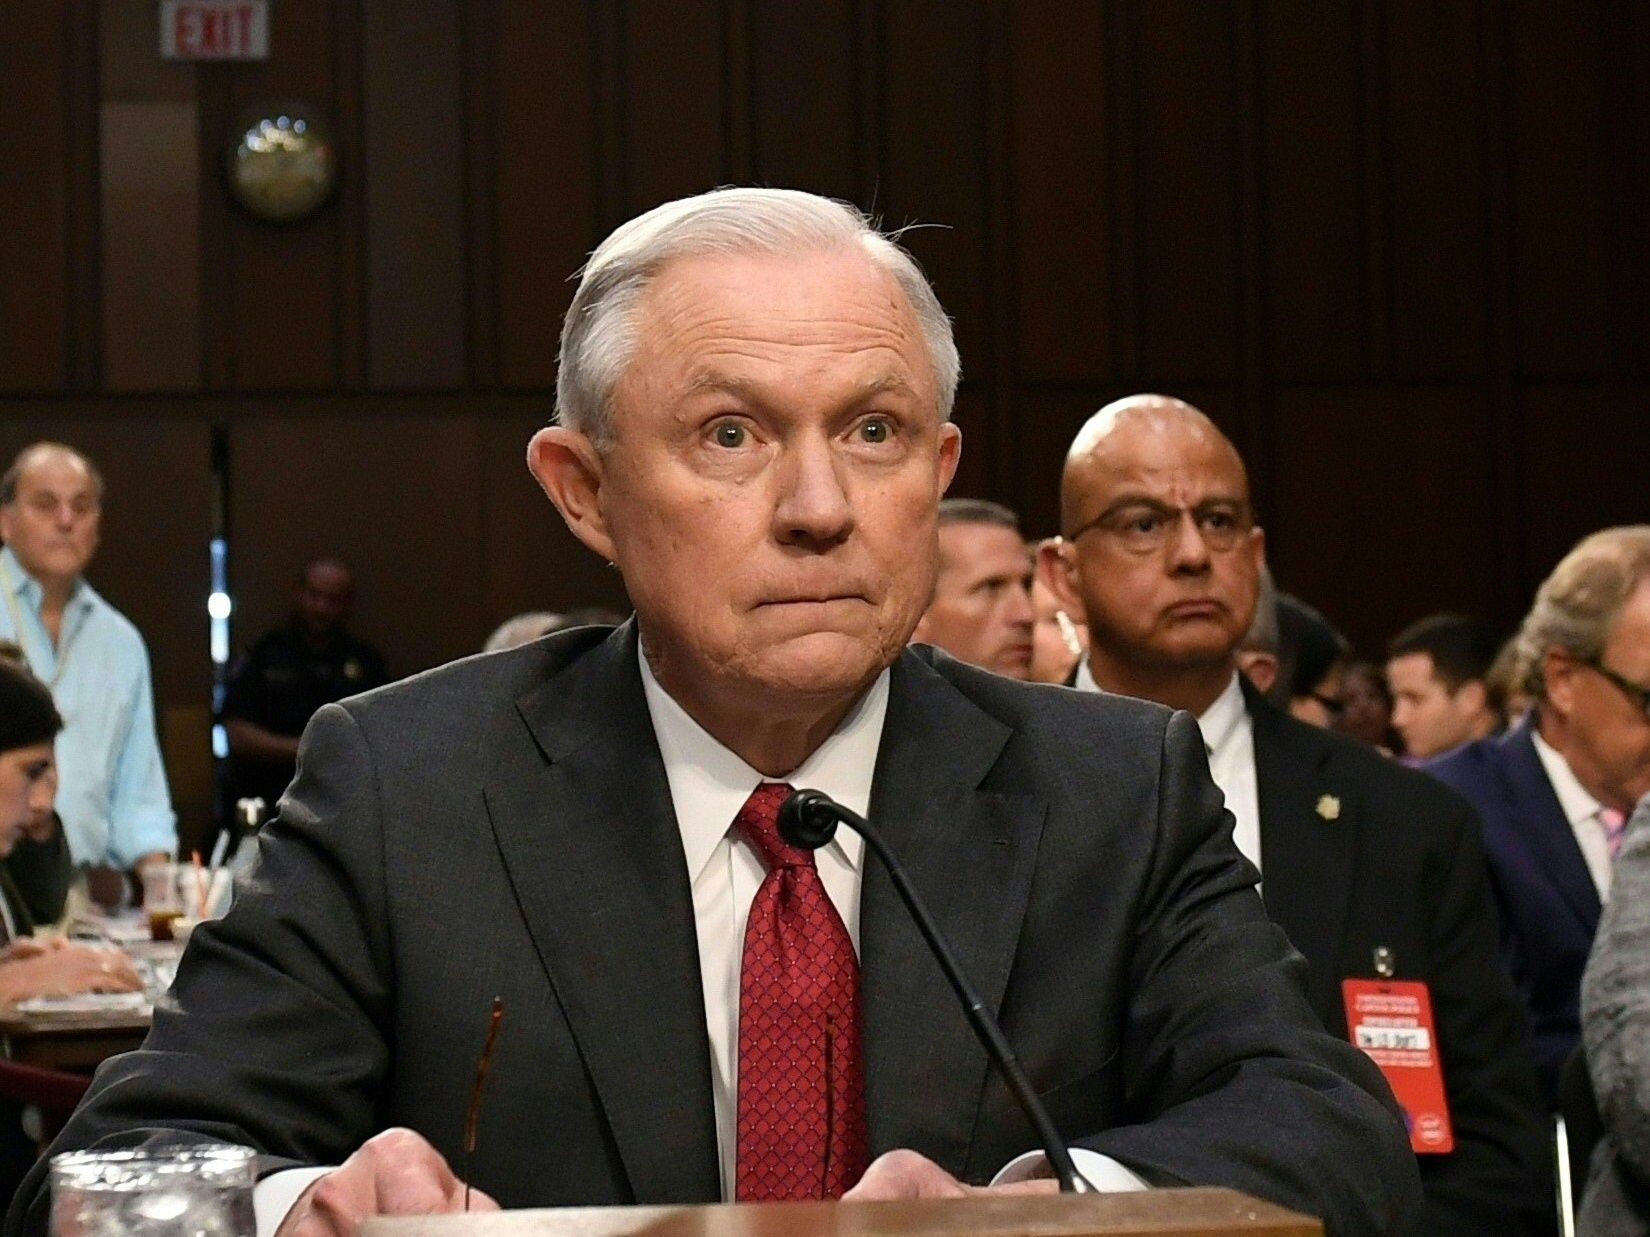 Sessions to face sharp questions on Russia contacts